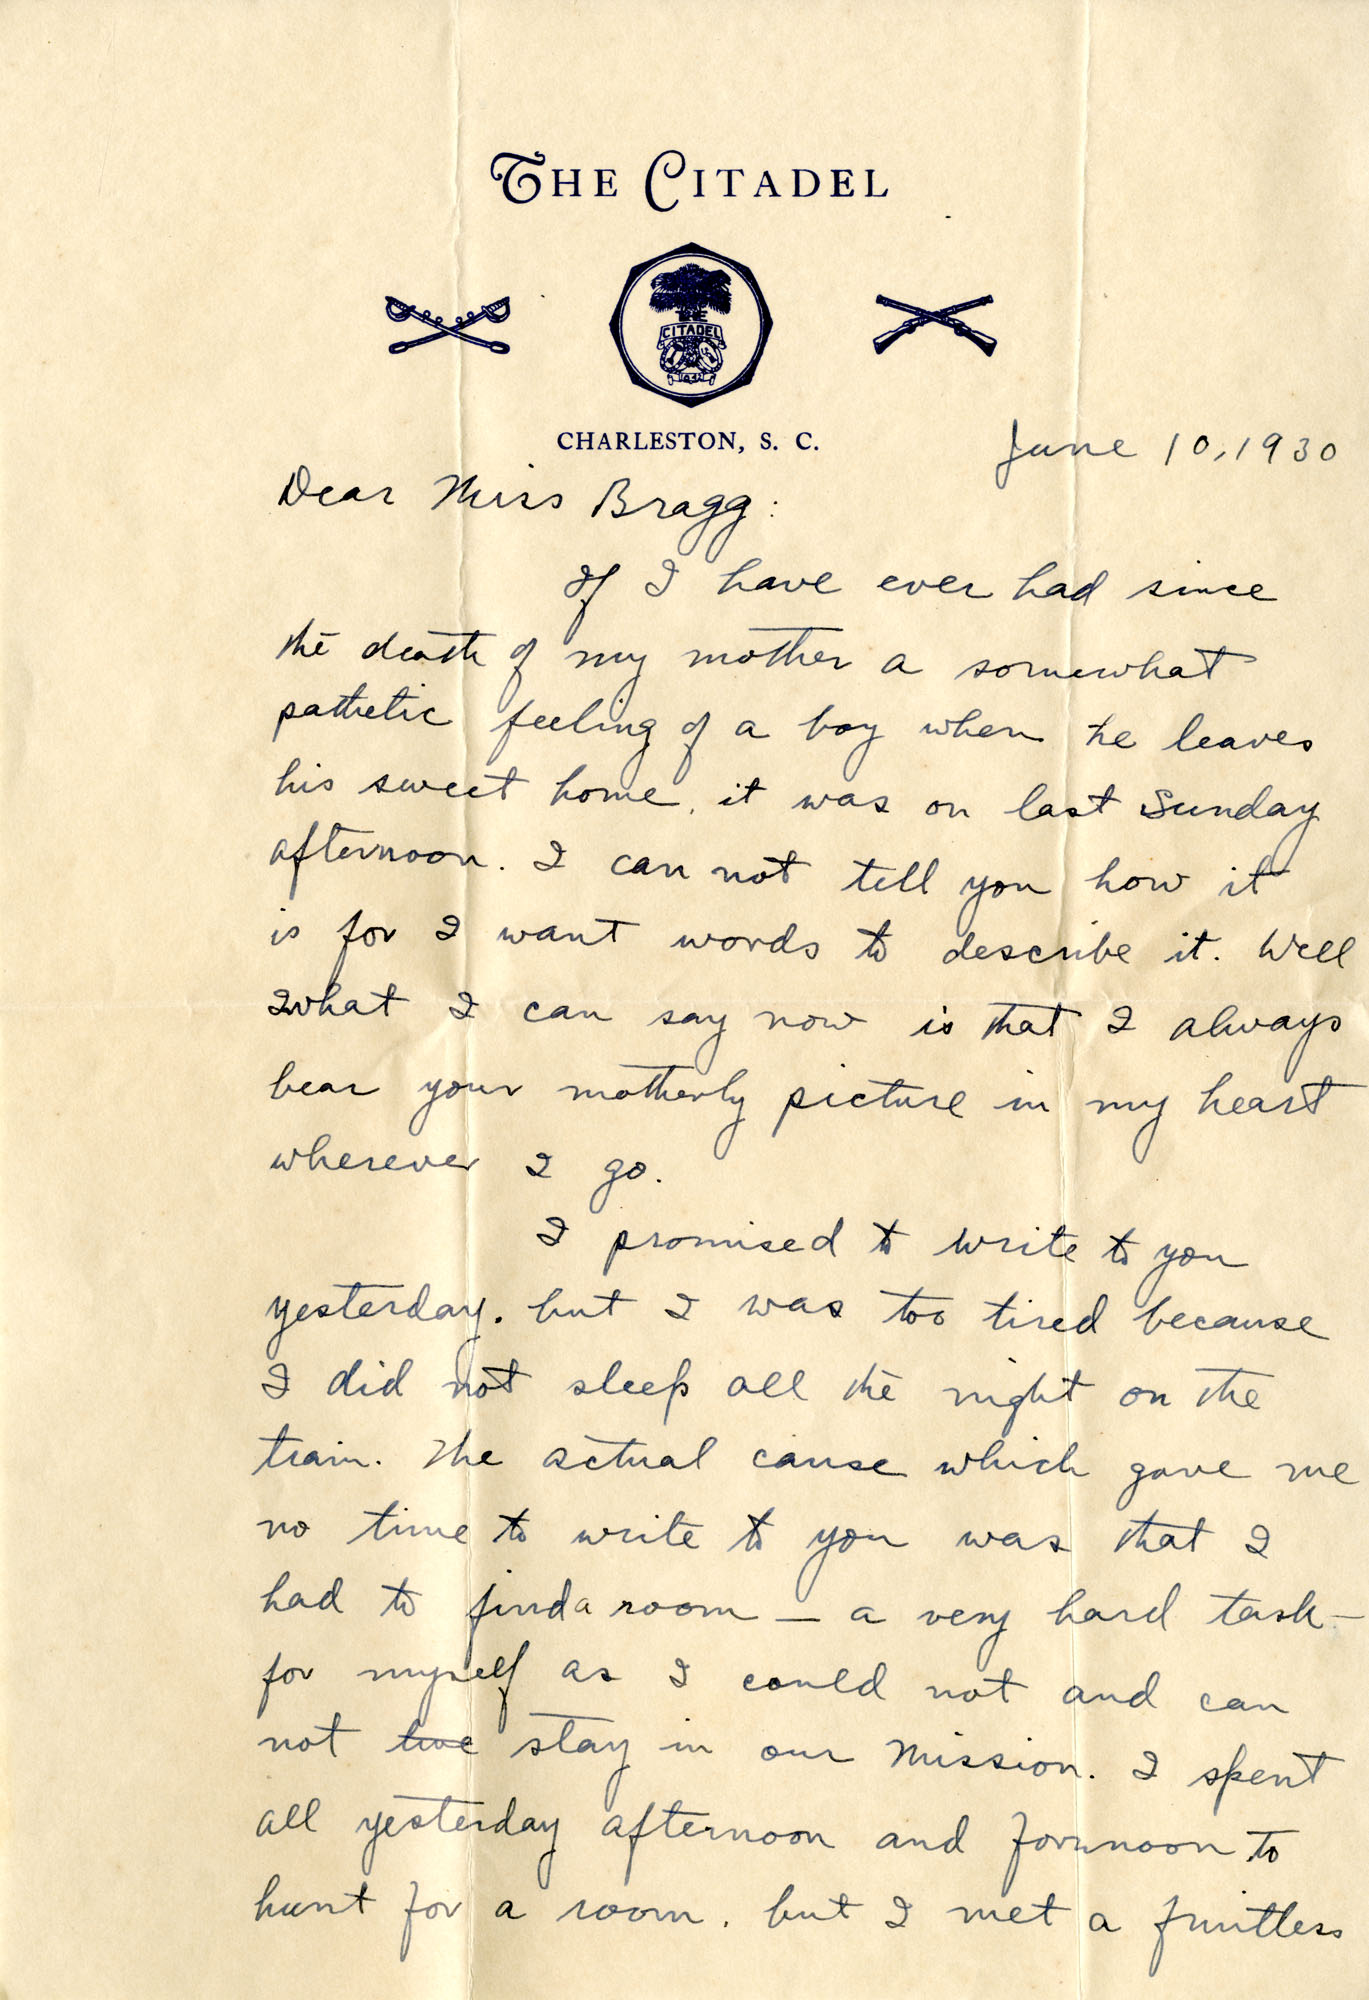 Letter from Fong Lee Wong to Laura M. Bragg June 10, 1930